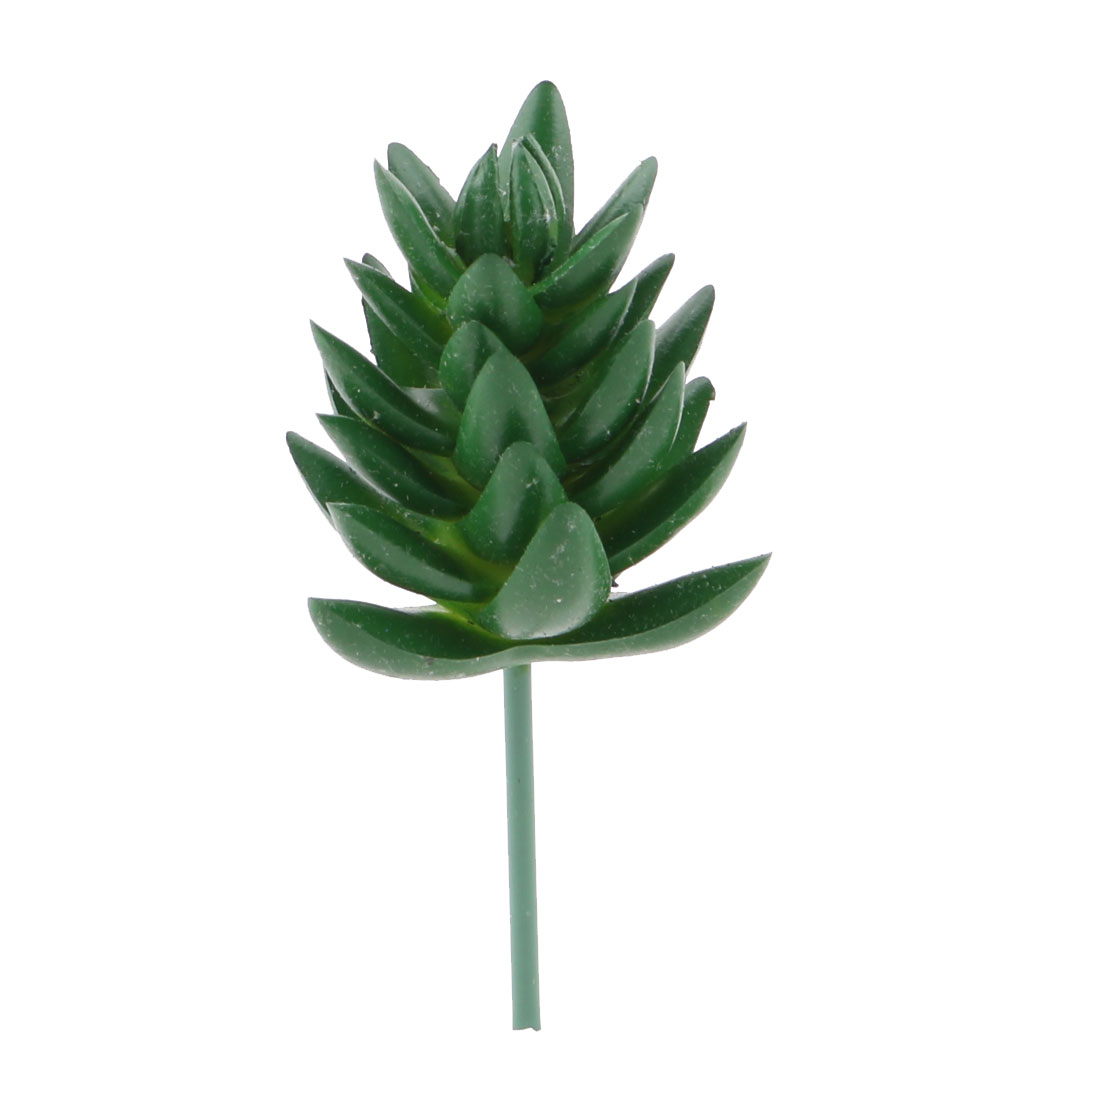 Home Window Plastic DIY Artificial Emulational Succulent Plant 3.7 Inches Height